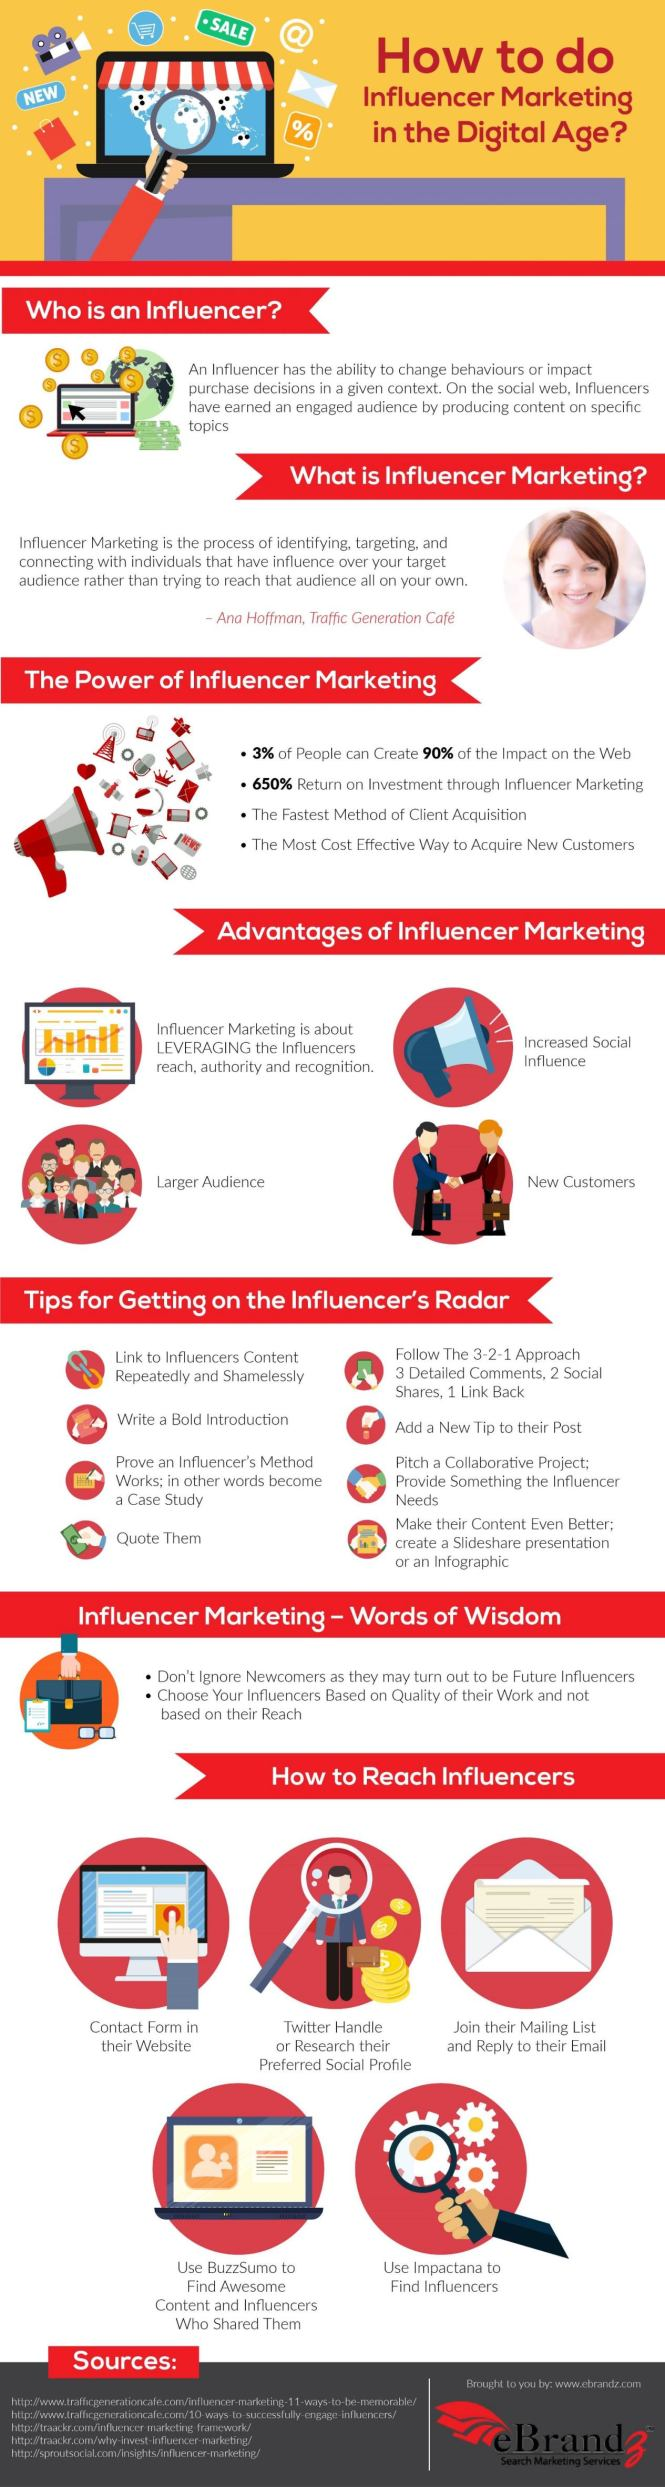 Influencer Marketing in the Digital Age